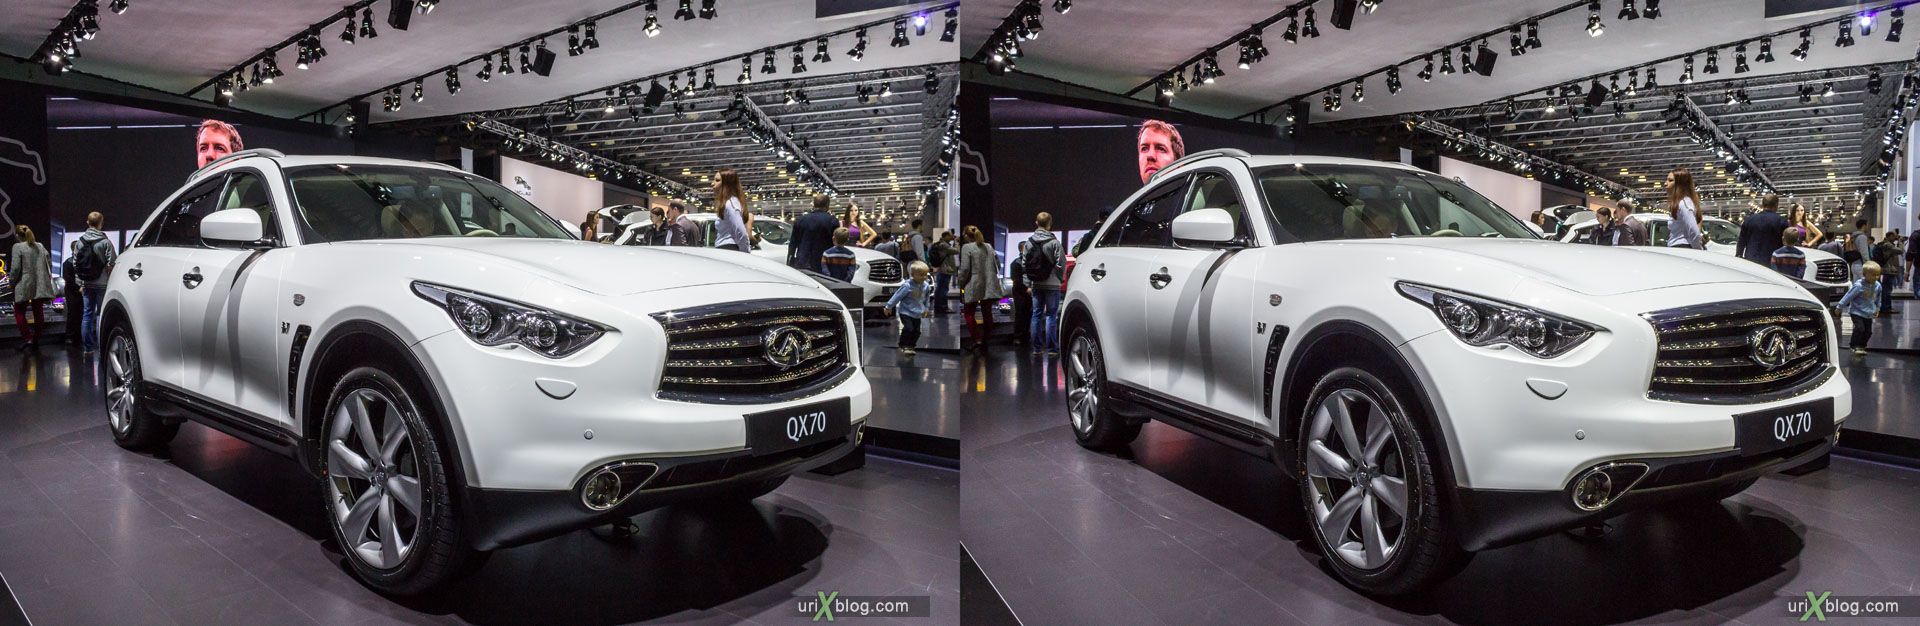 Infiniti QX70, Moscow International Automobile Salon 2014, MIAS 2014, girls, models, Crocus Expo, Moscow, Russia, 3D, stereo pair, cross-eyed, crossview, cross view stereo pair, stereoscopic, 2014